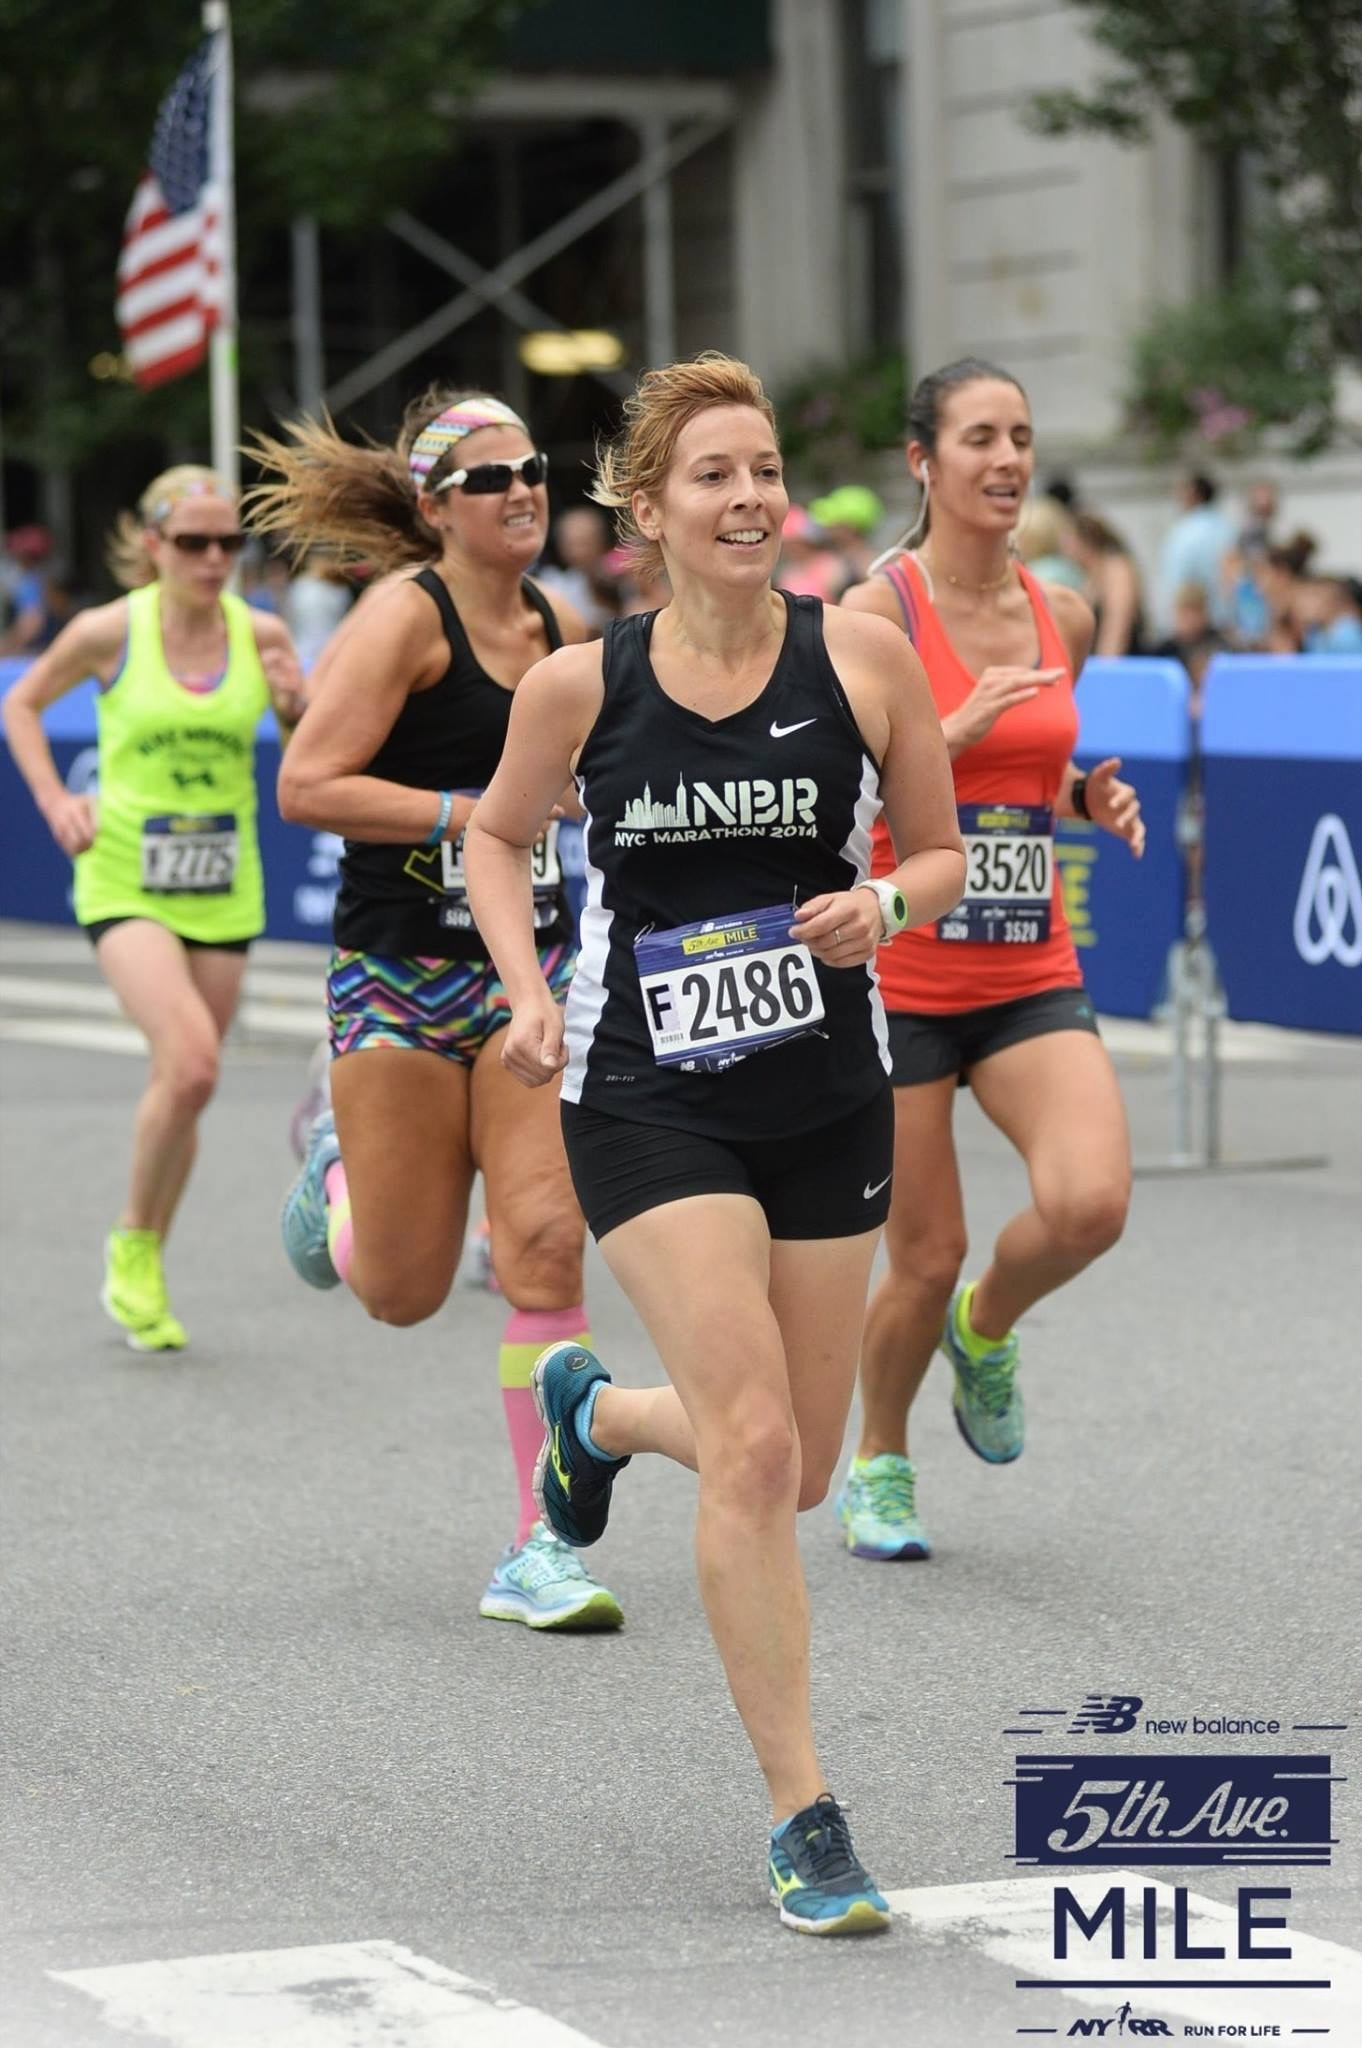 Running the Fifth Avenue Mile